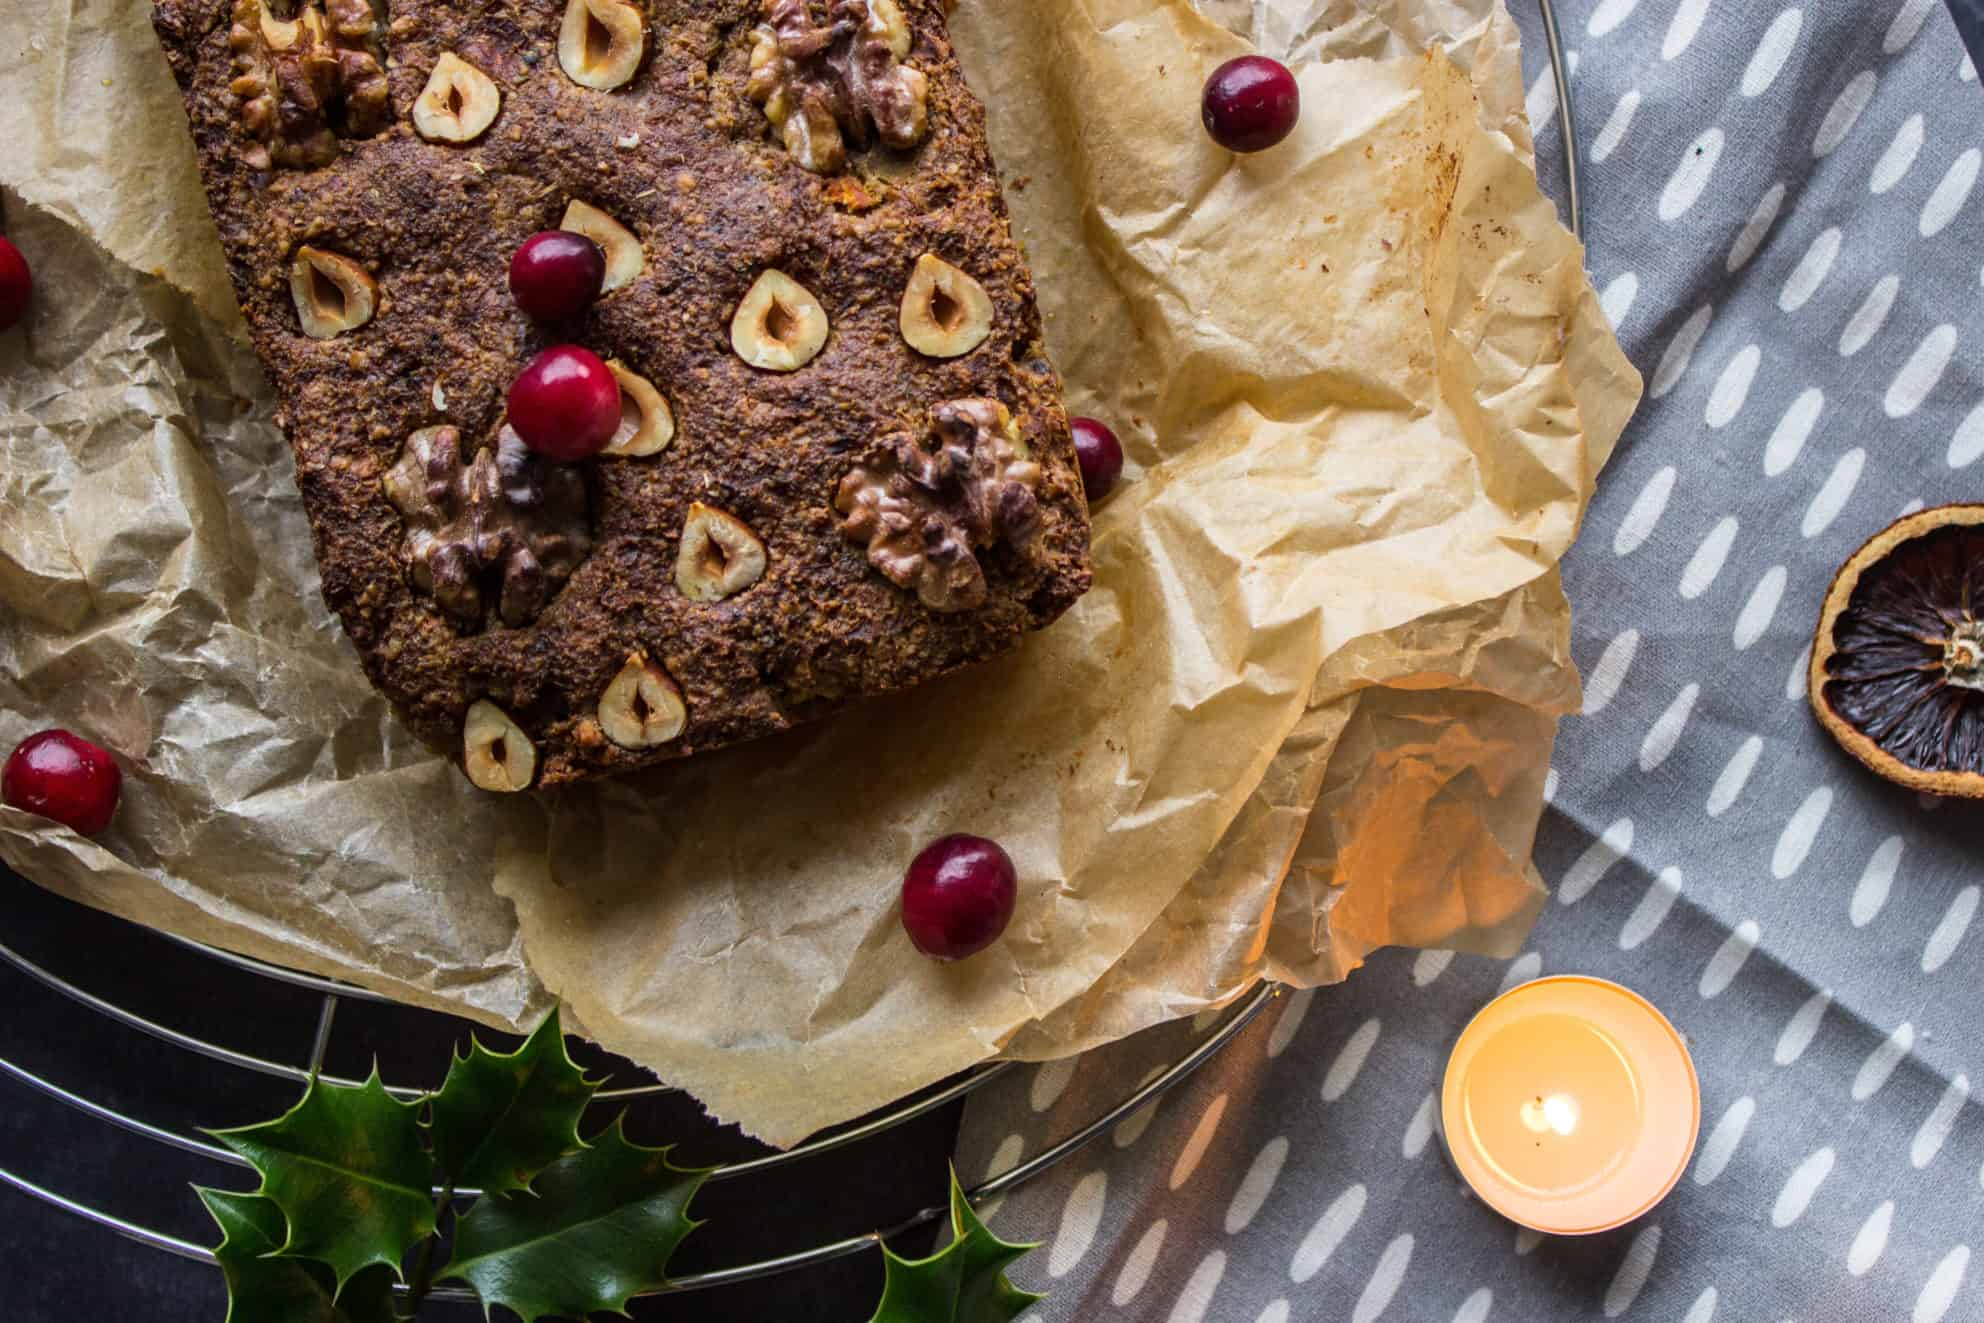 Vegan Christmas Recipes. Overhead closeup image of Classic Vegan Nut Roast (gluten-free). Picture shows a portions of a hazelnut-studded nut roast on baking parchment, surrounded by holly leaves, orange slices and cranberries. Some tealight candles and a grey patterned napkin are also visible.